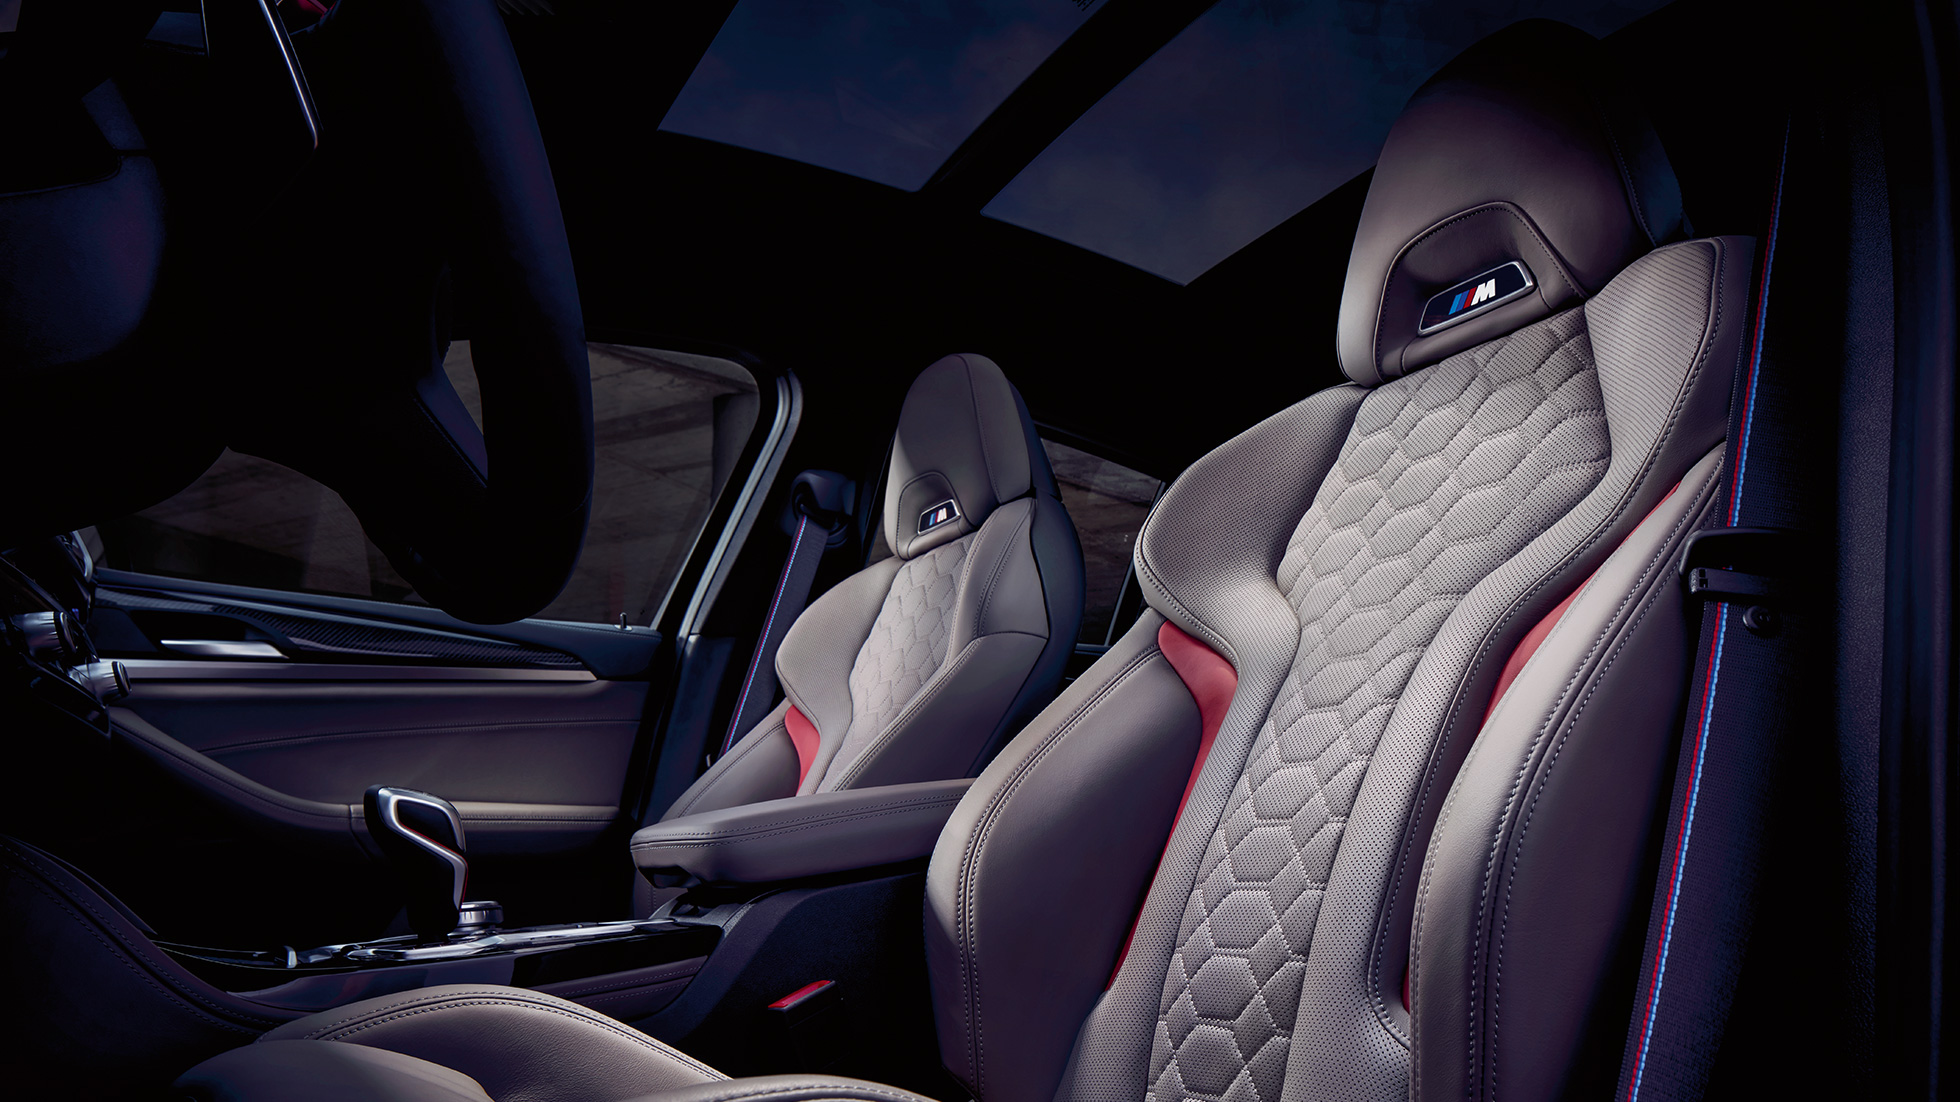 BMW X4 M Competition, interior, M Sport seats in leather 'Merino' Adelaide Grey.